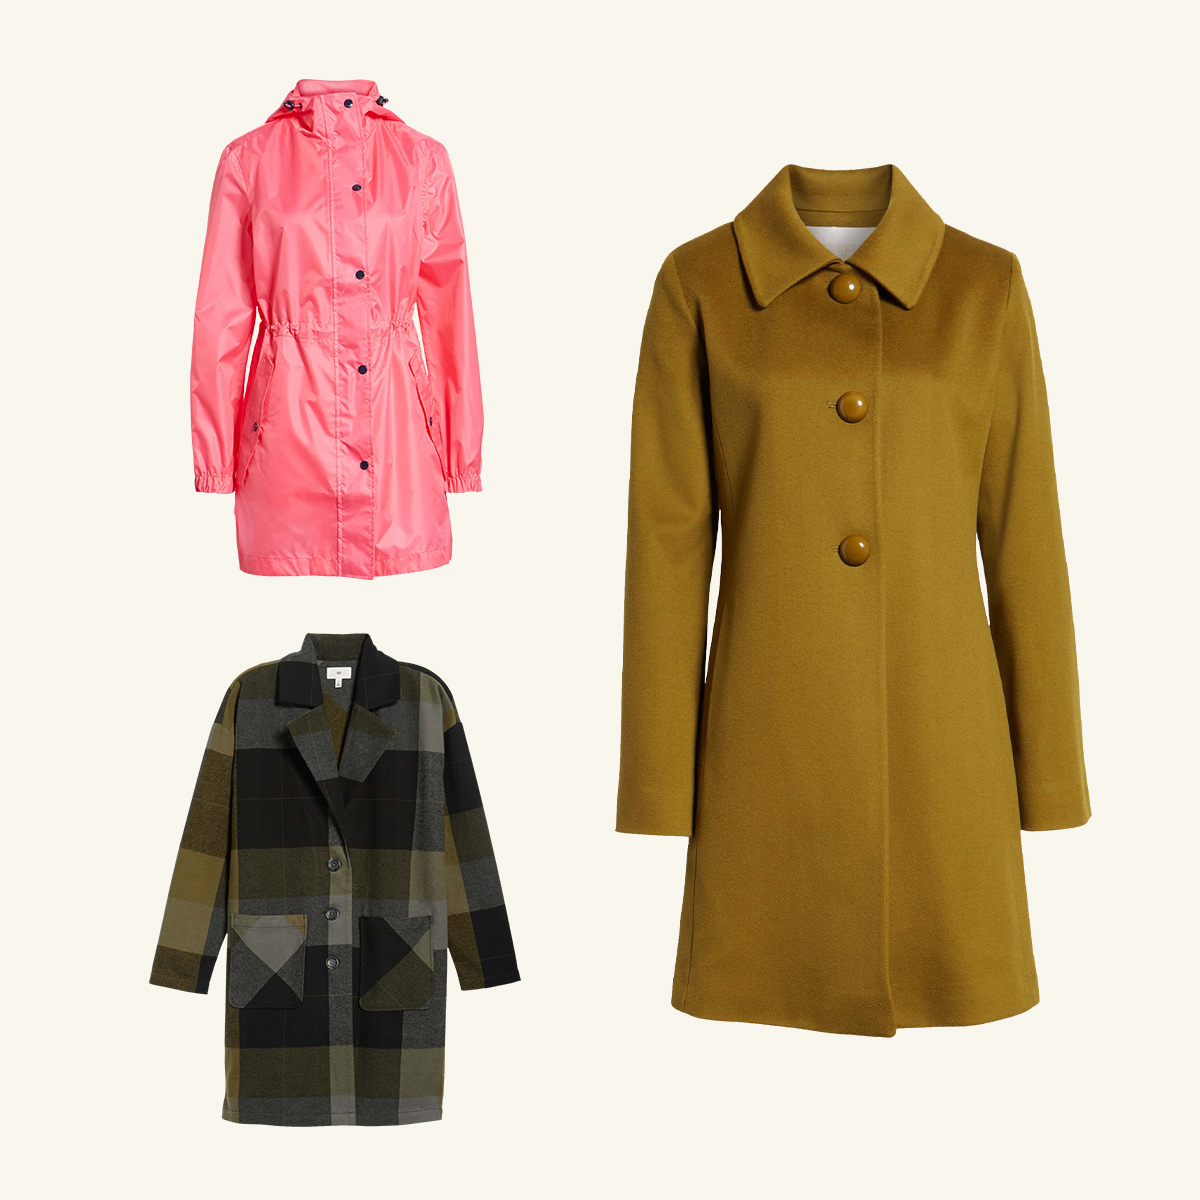 Three women's coats meant to be worn in mild weather.